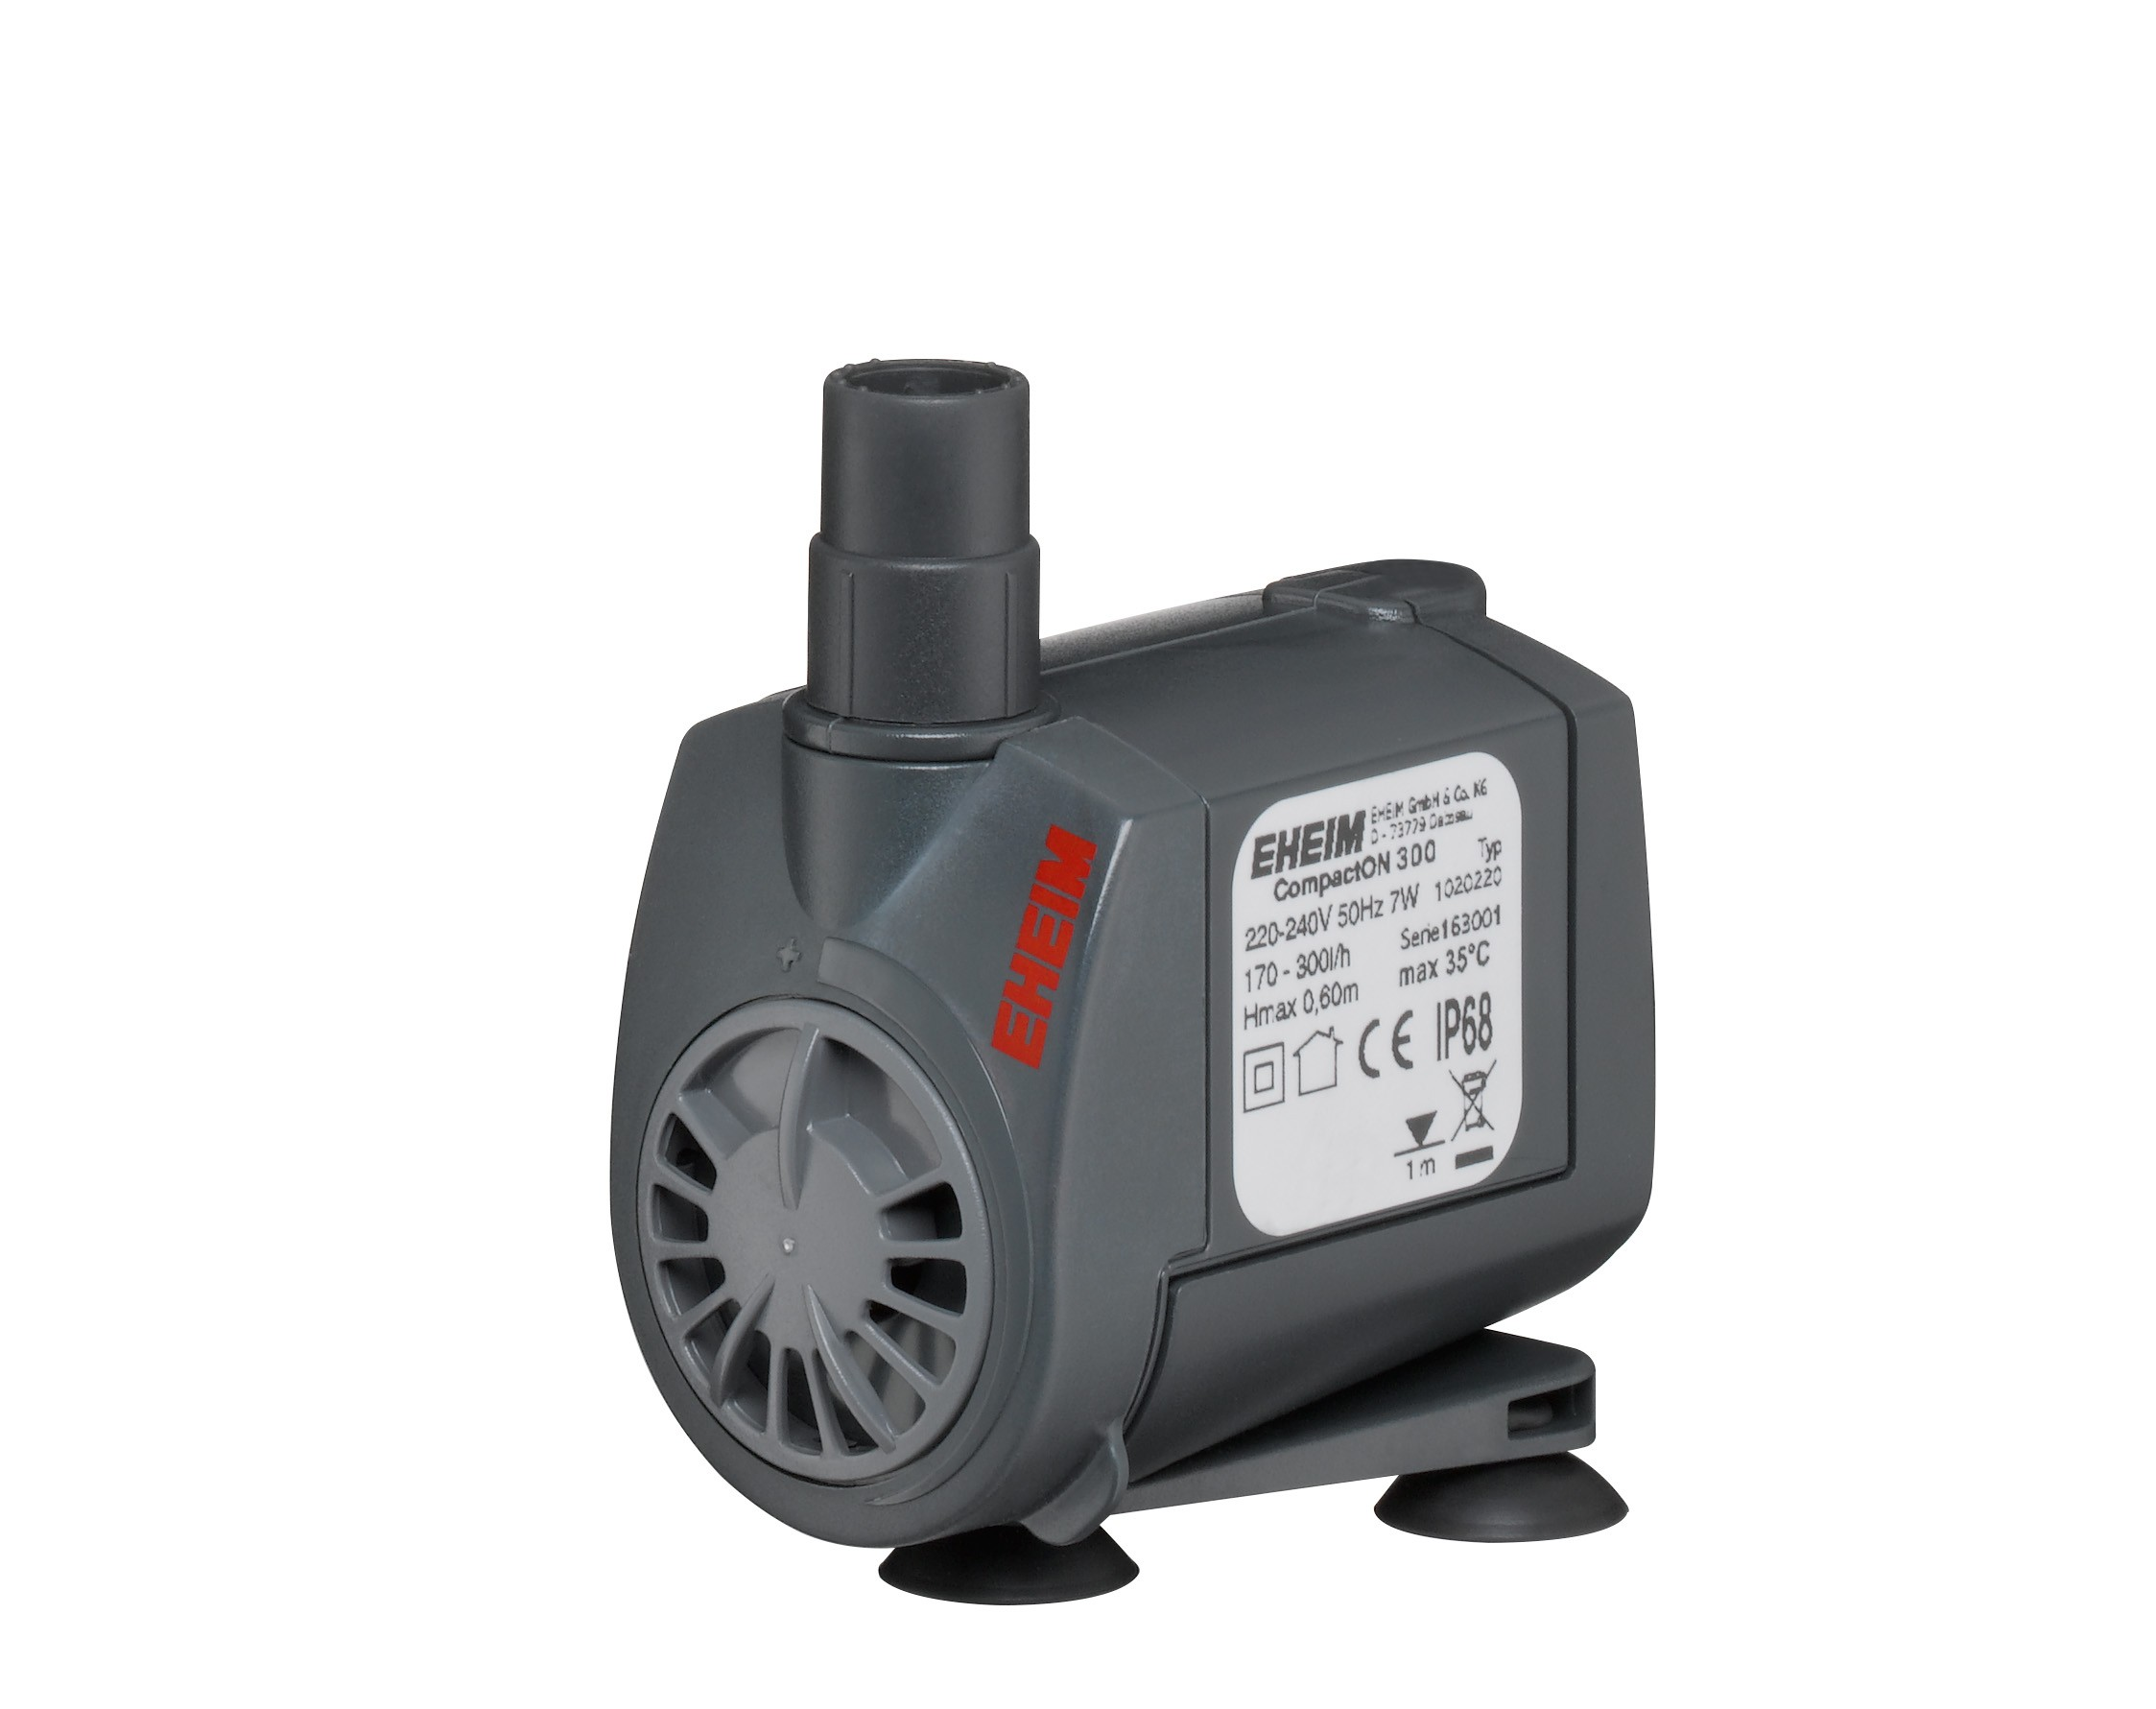 Eheim Compact on 600 Powerhead